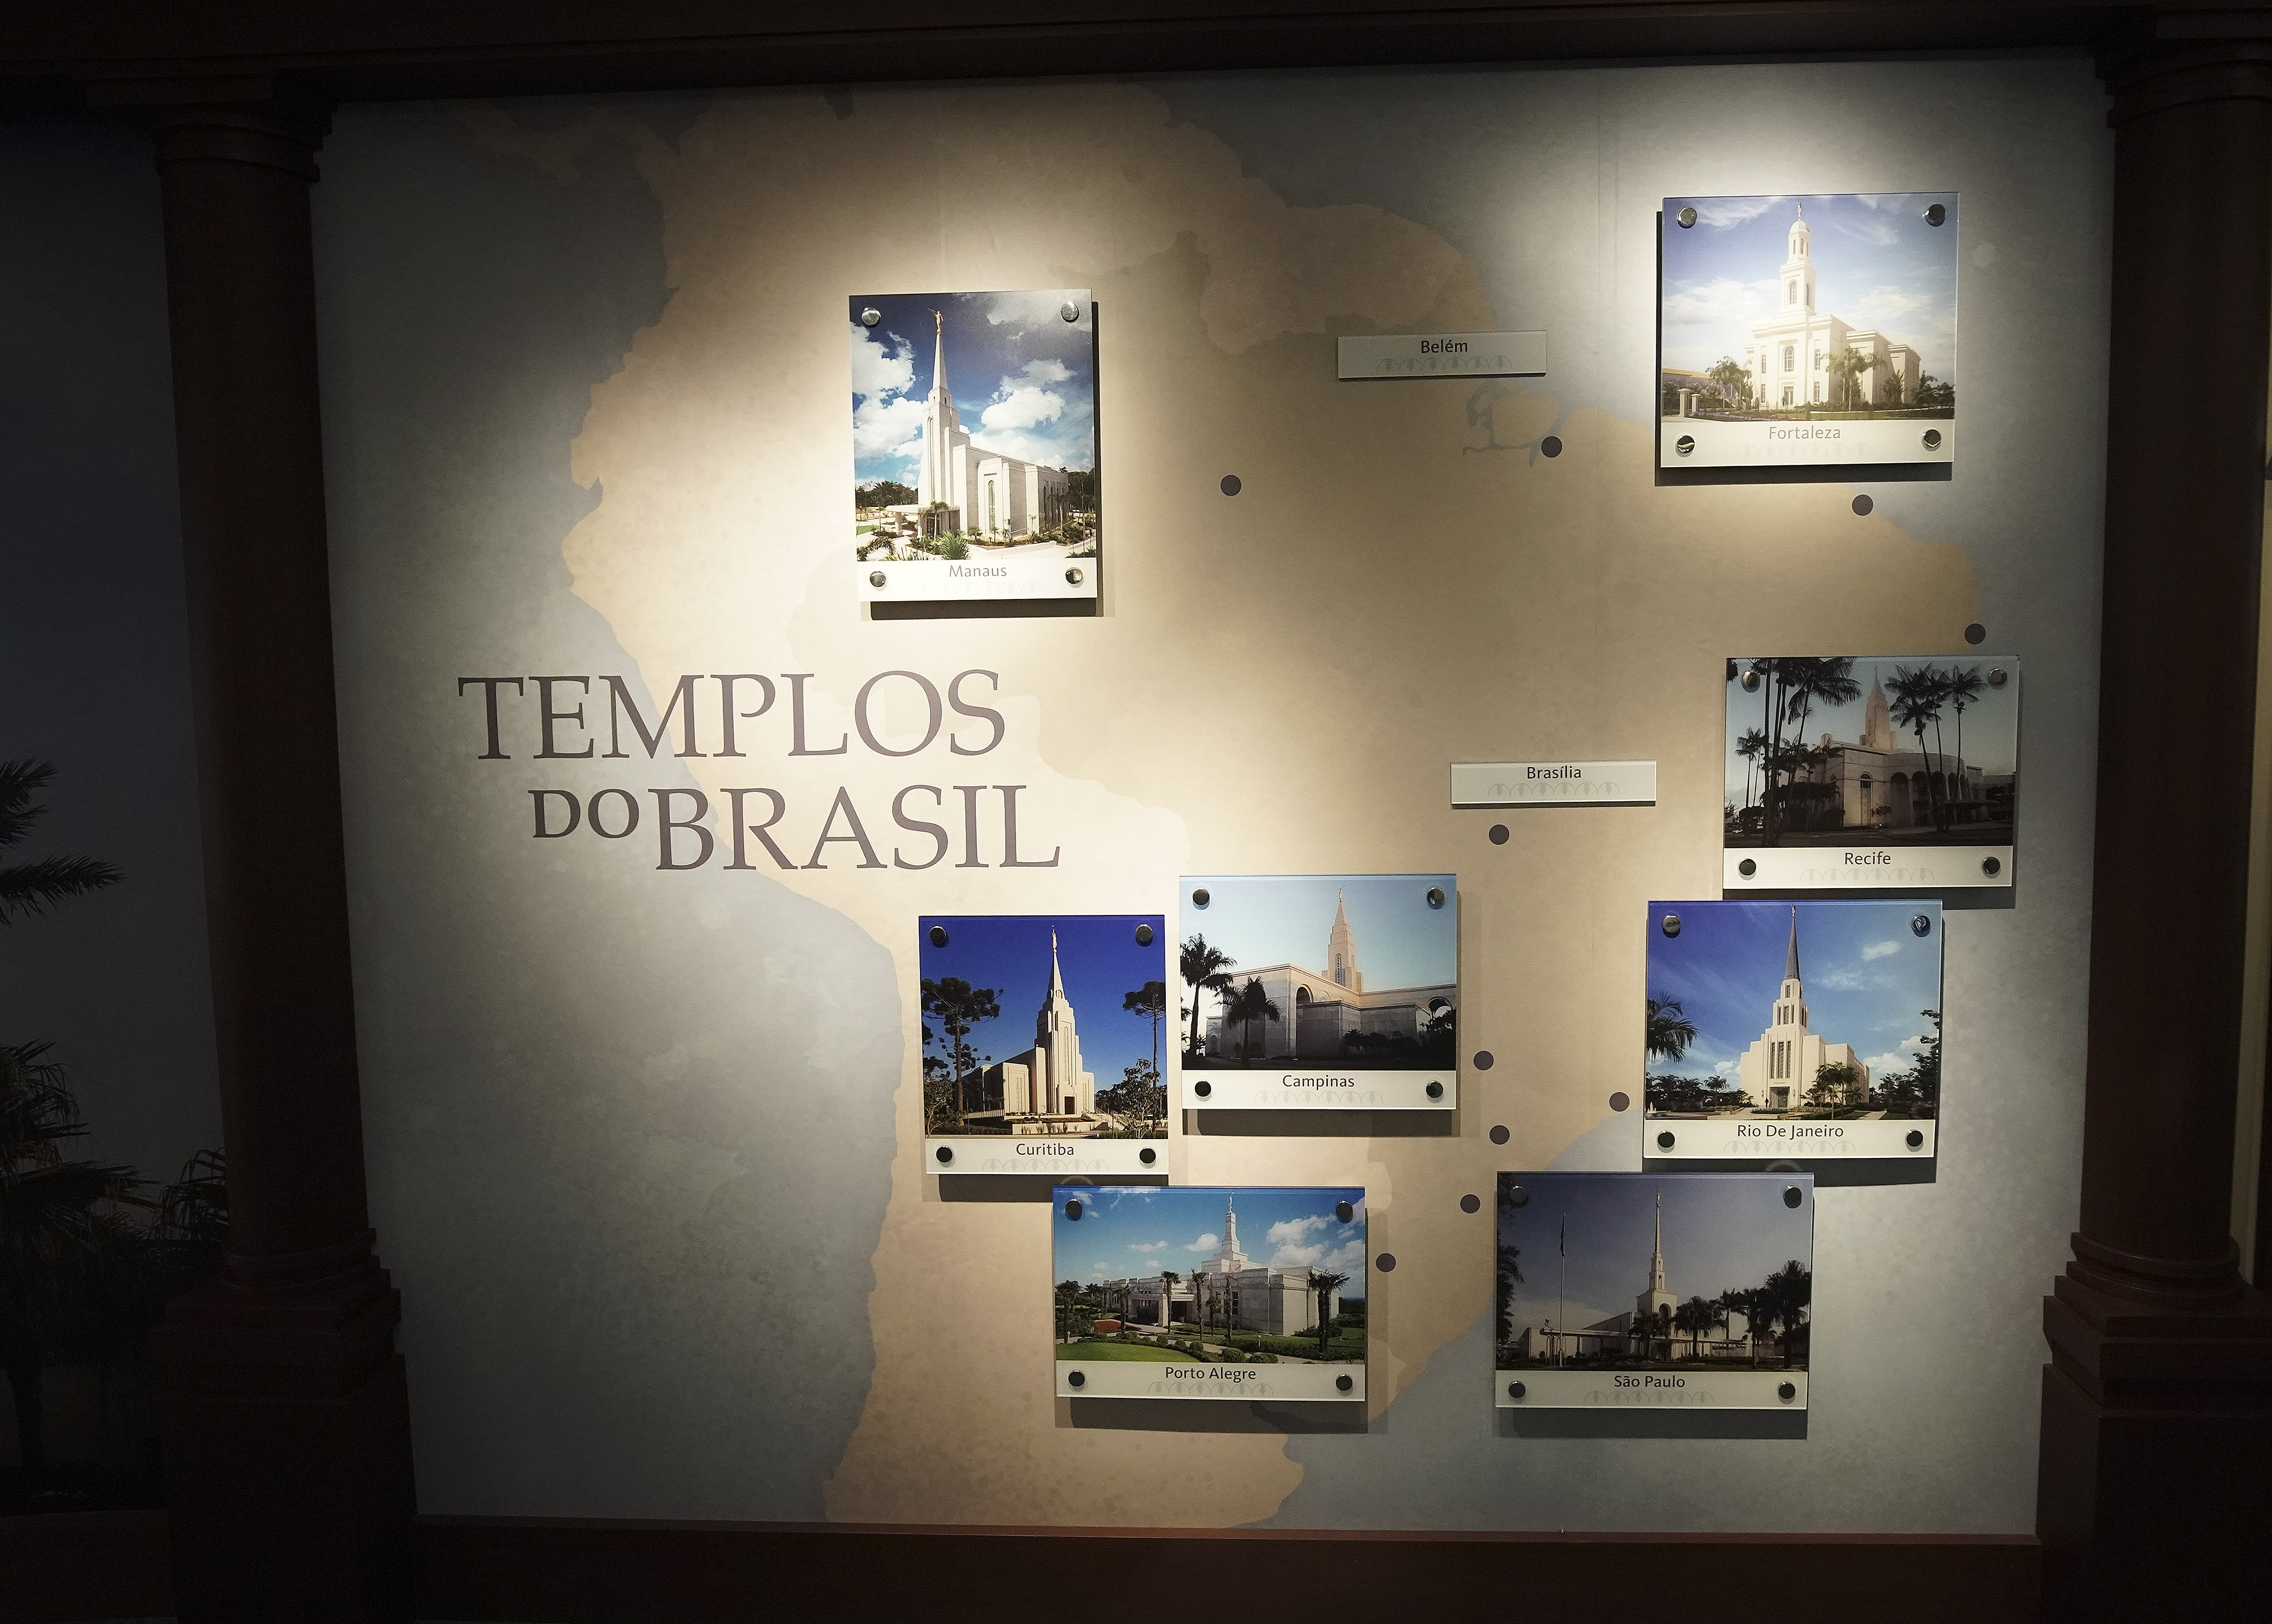 Displays are looked over in the Sao Paulo Brazil Temple Visitors' Center in Sao Paulo, Brazil, on Aug. 31, 2019.